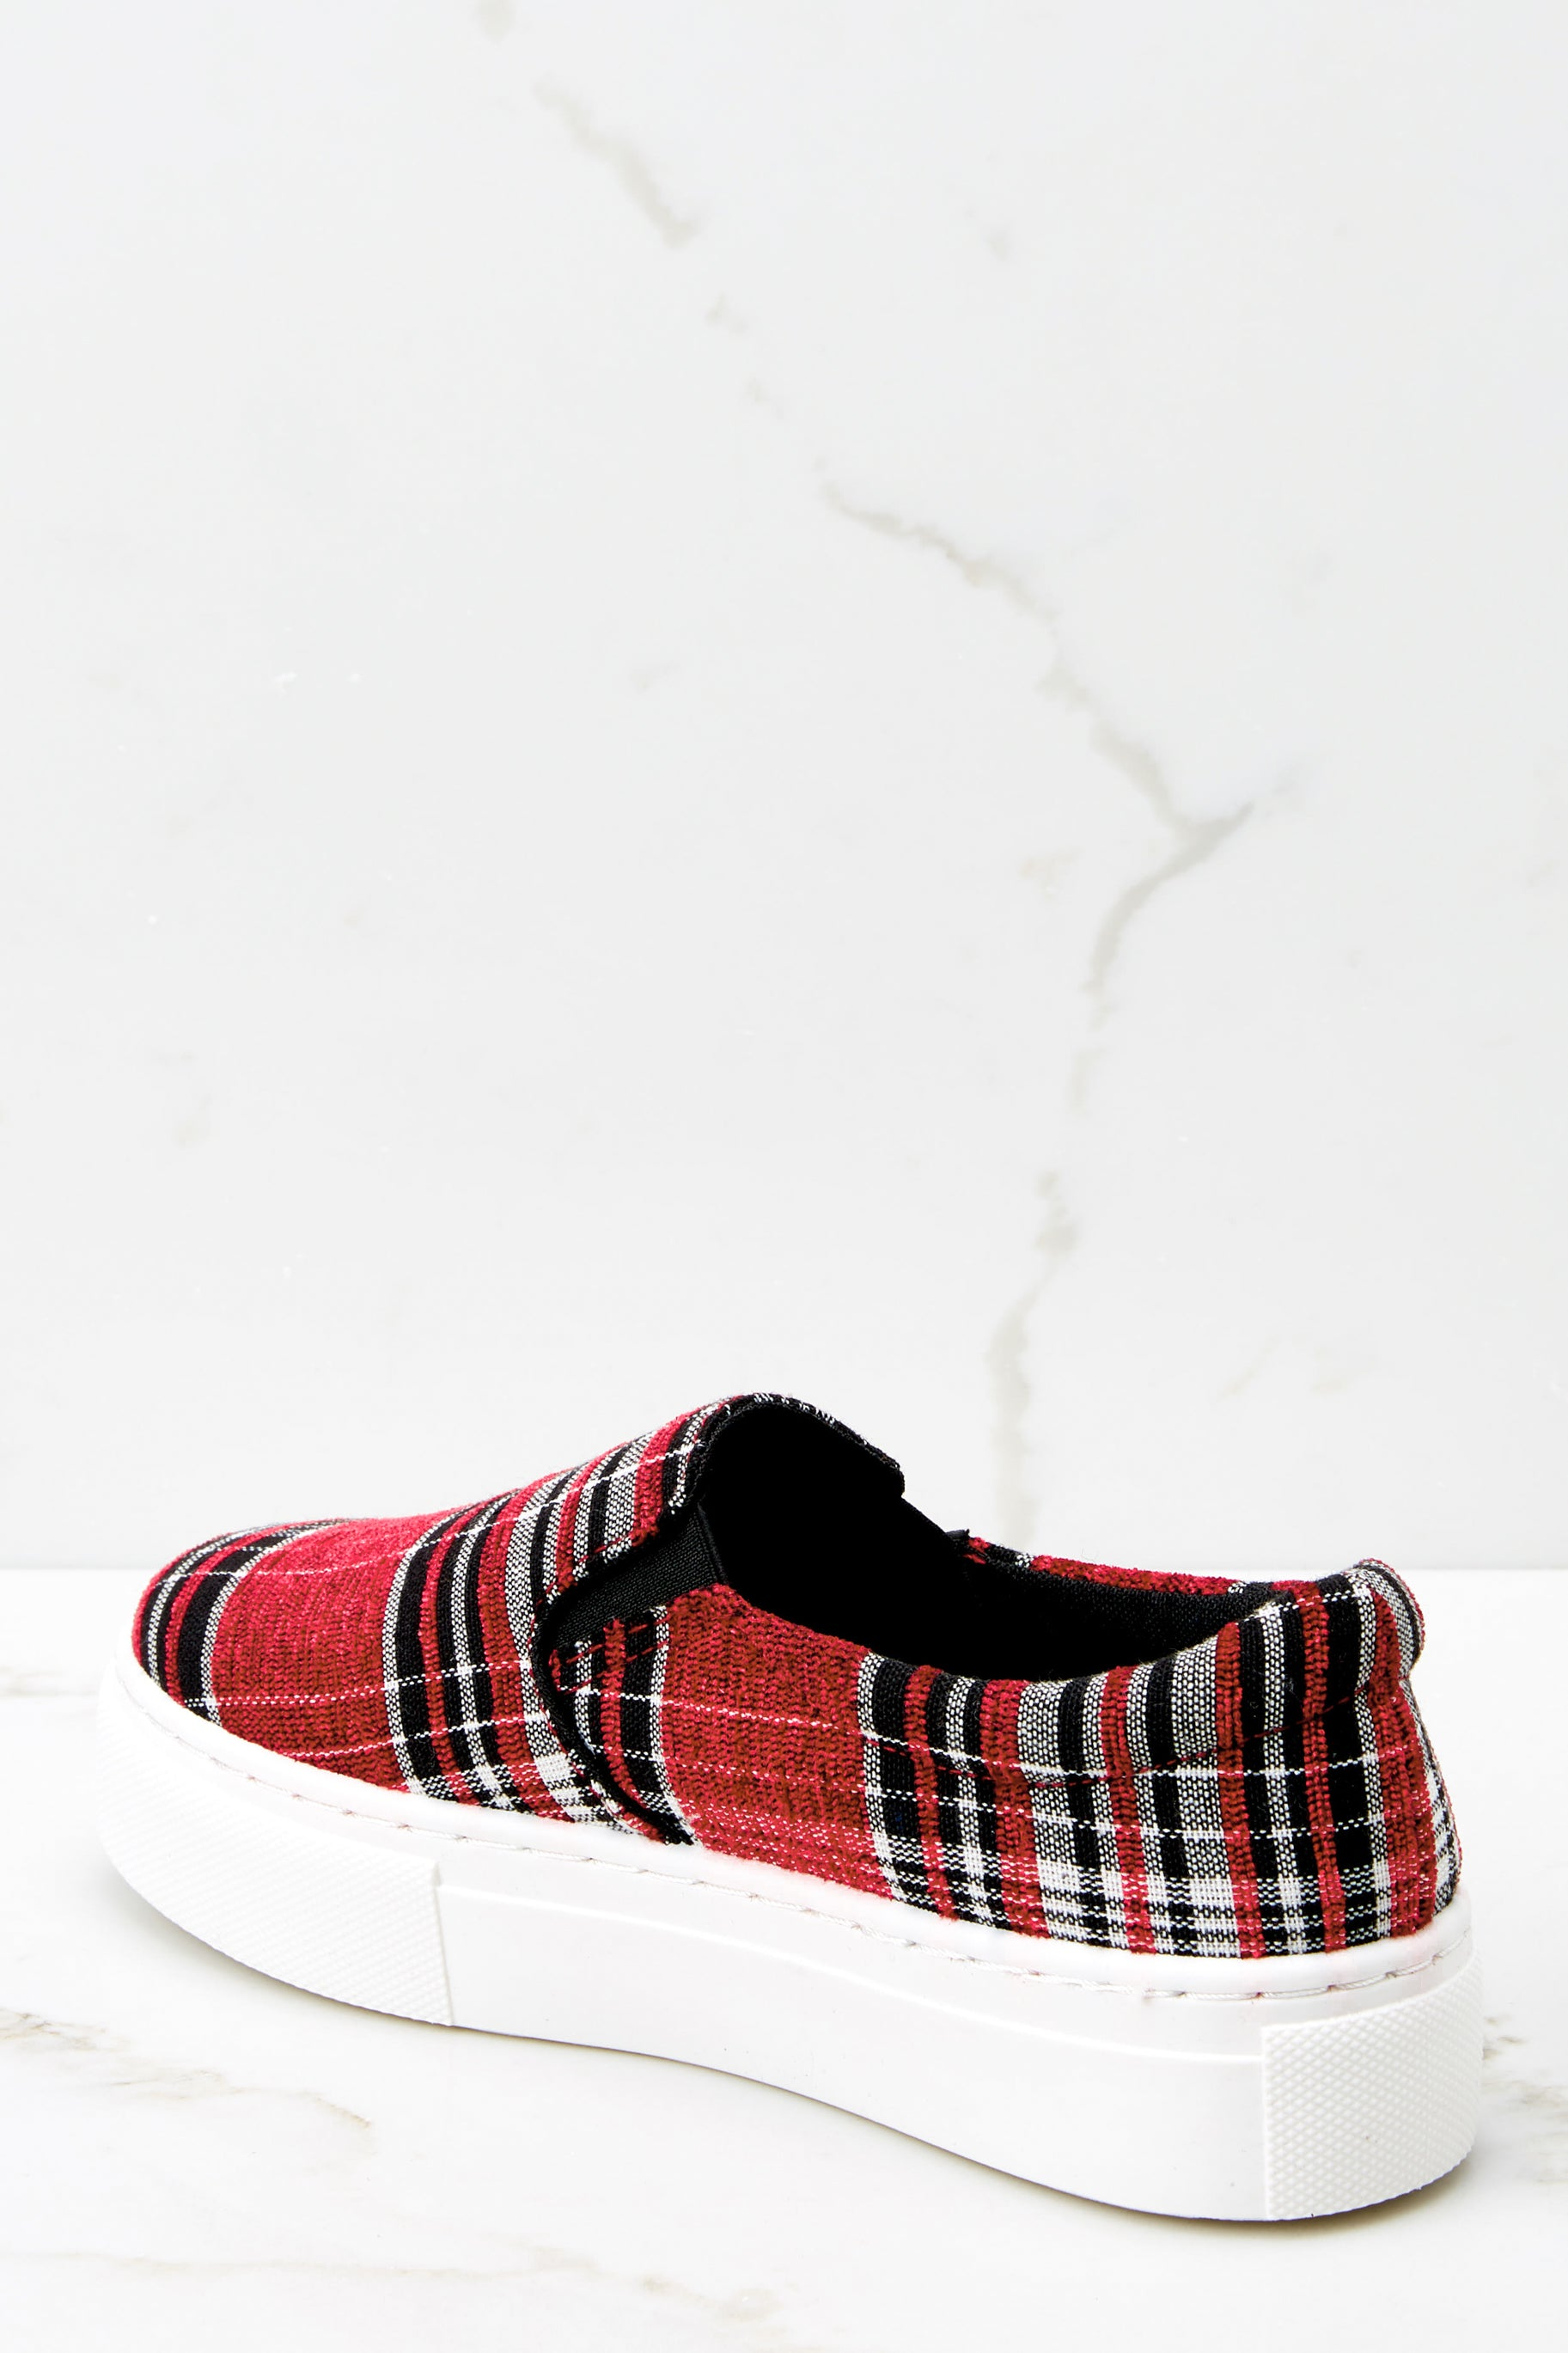 3 Plaid My Way Red Multi Plaid Slip On Sneakers at reddressboutique.com